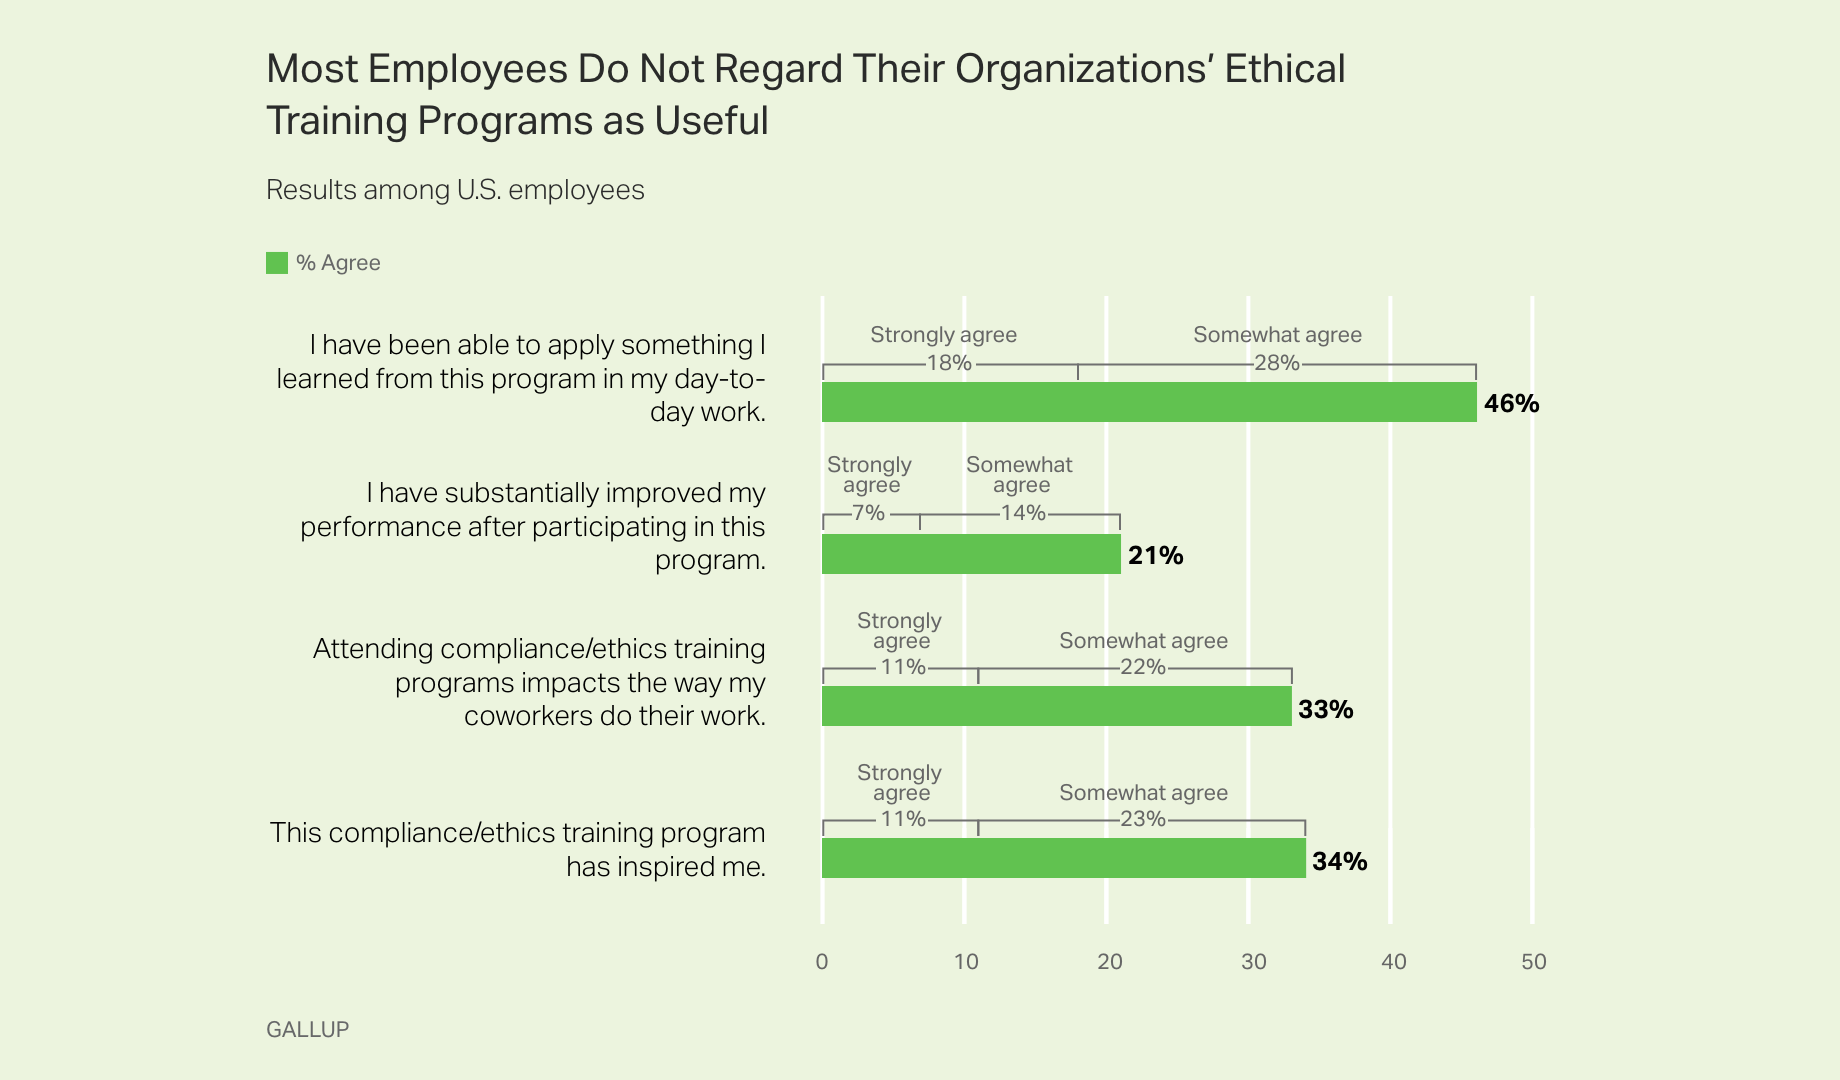 Bar graph. Most employees do not regard their organizations' ethical training programs as useful.